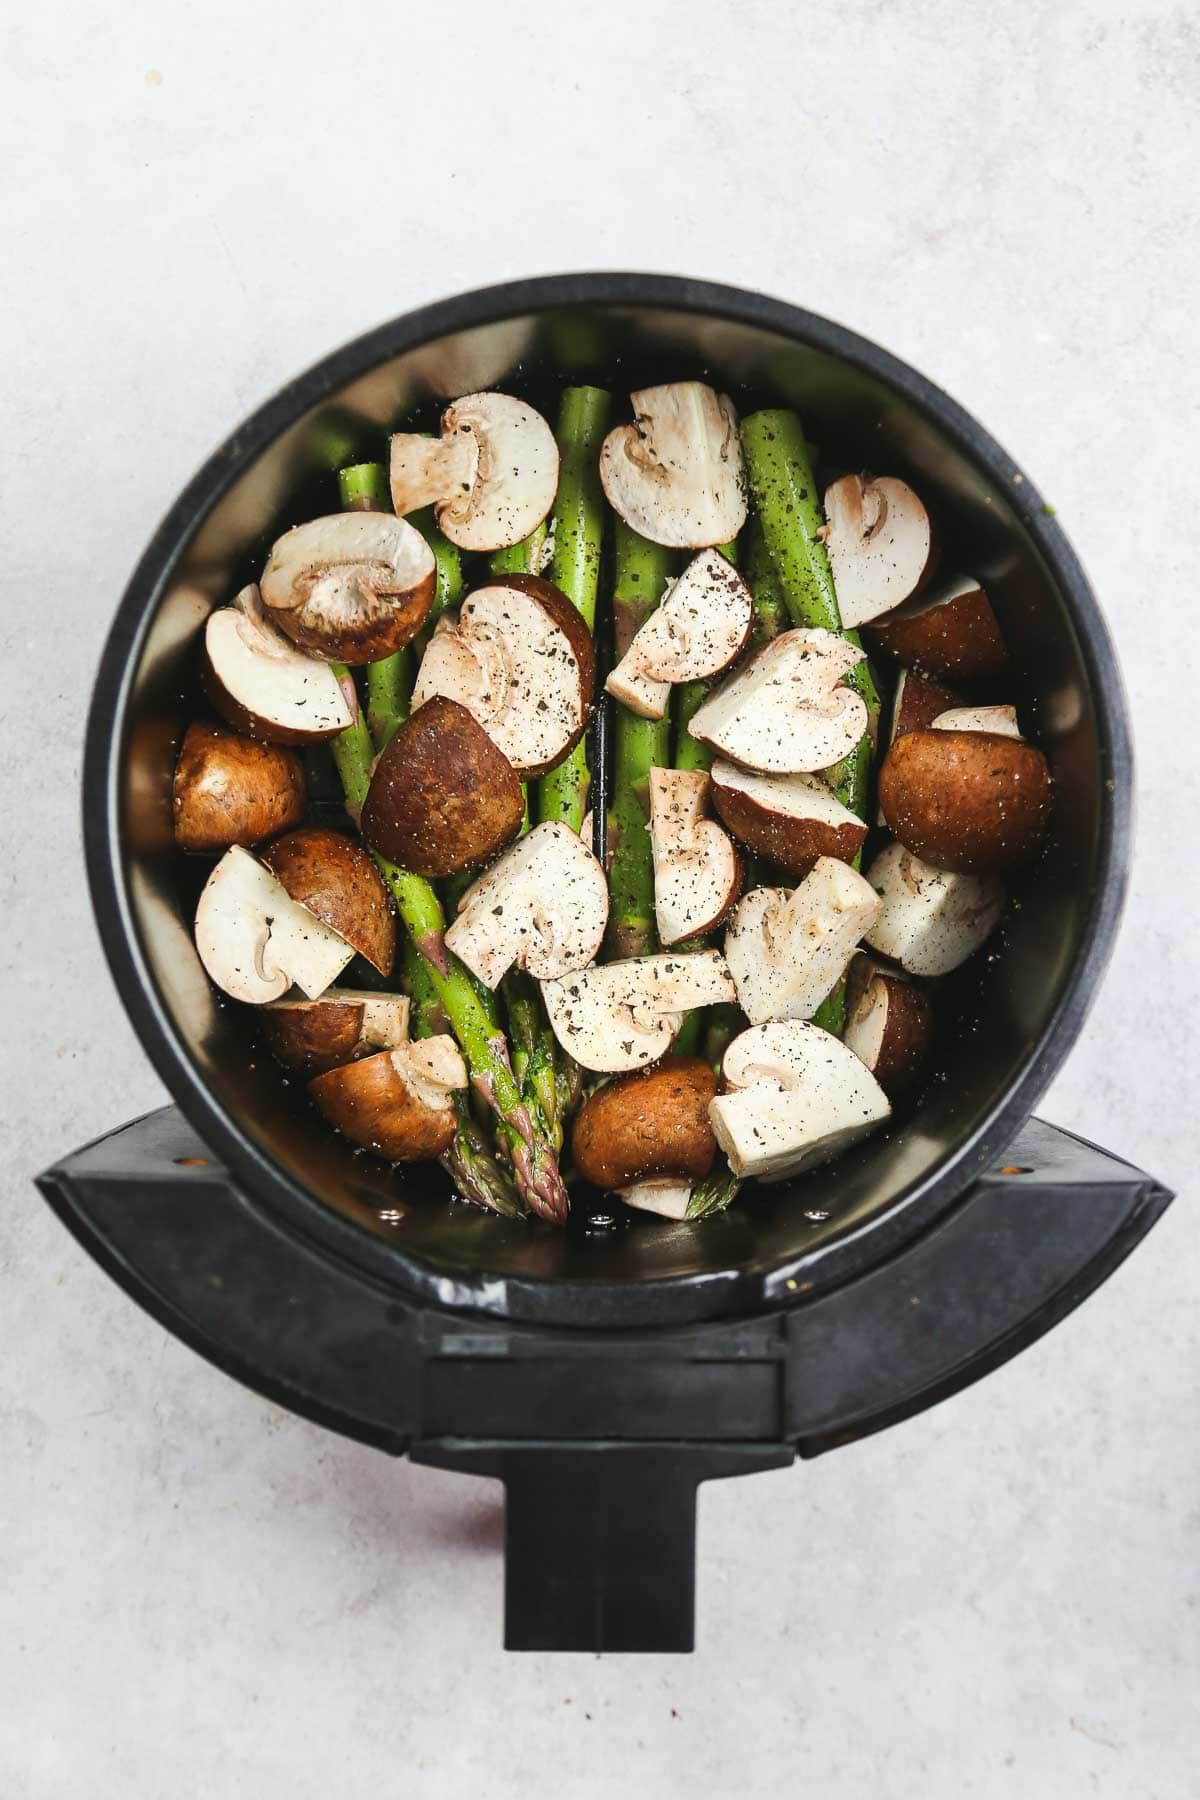 Seasoned and oil-sprayed asparagus and mushrooms placed in the air fryer basket.